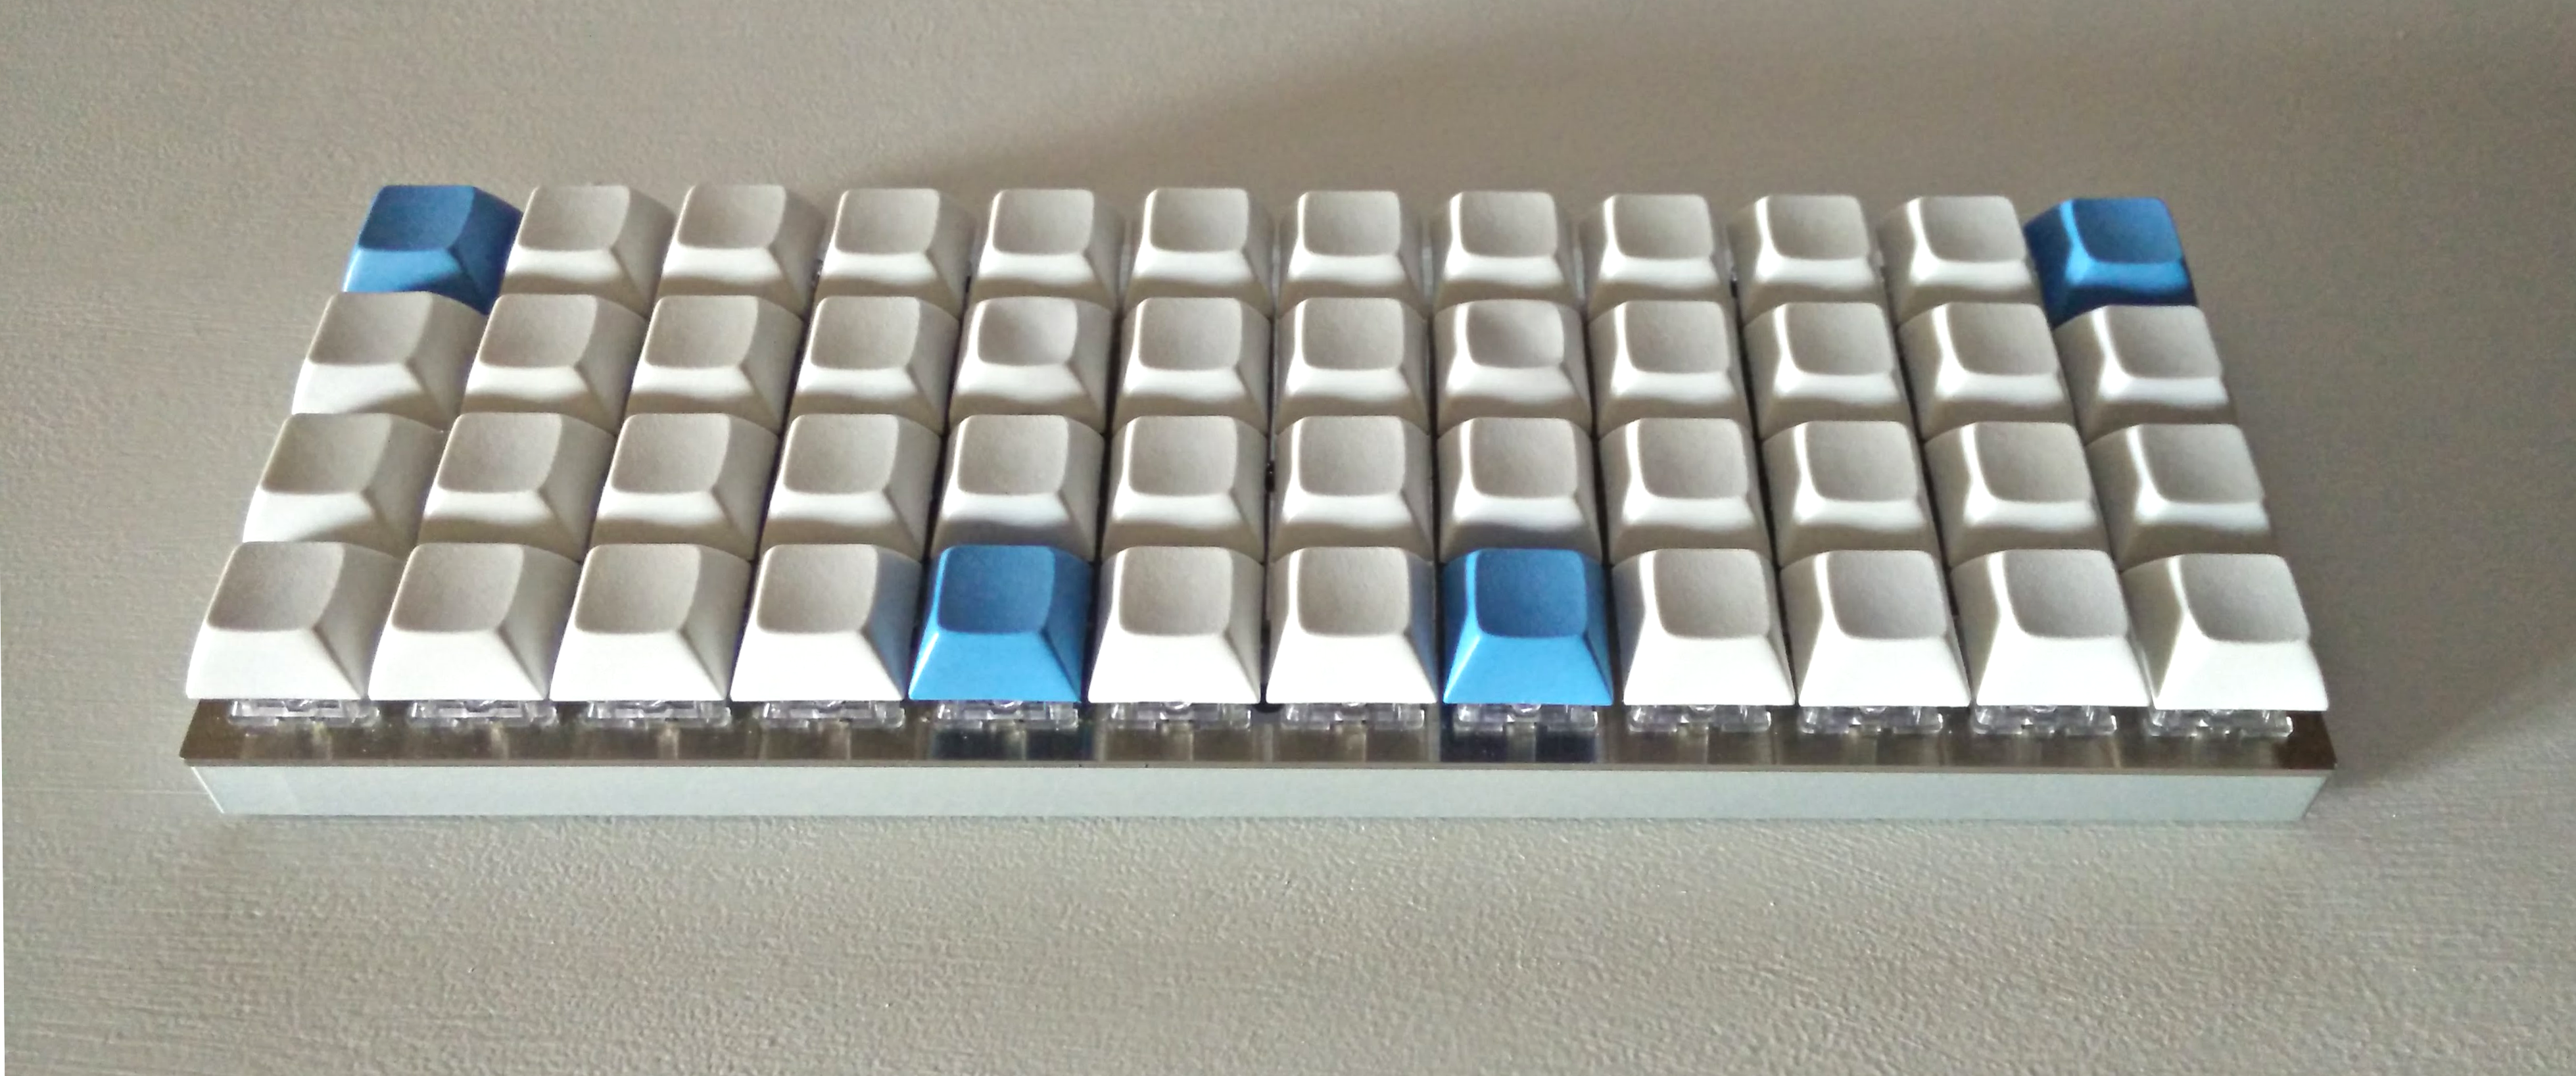 The (infinite) quest for the perfect keyboard and layout · Simone Gotti